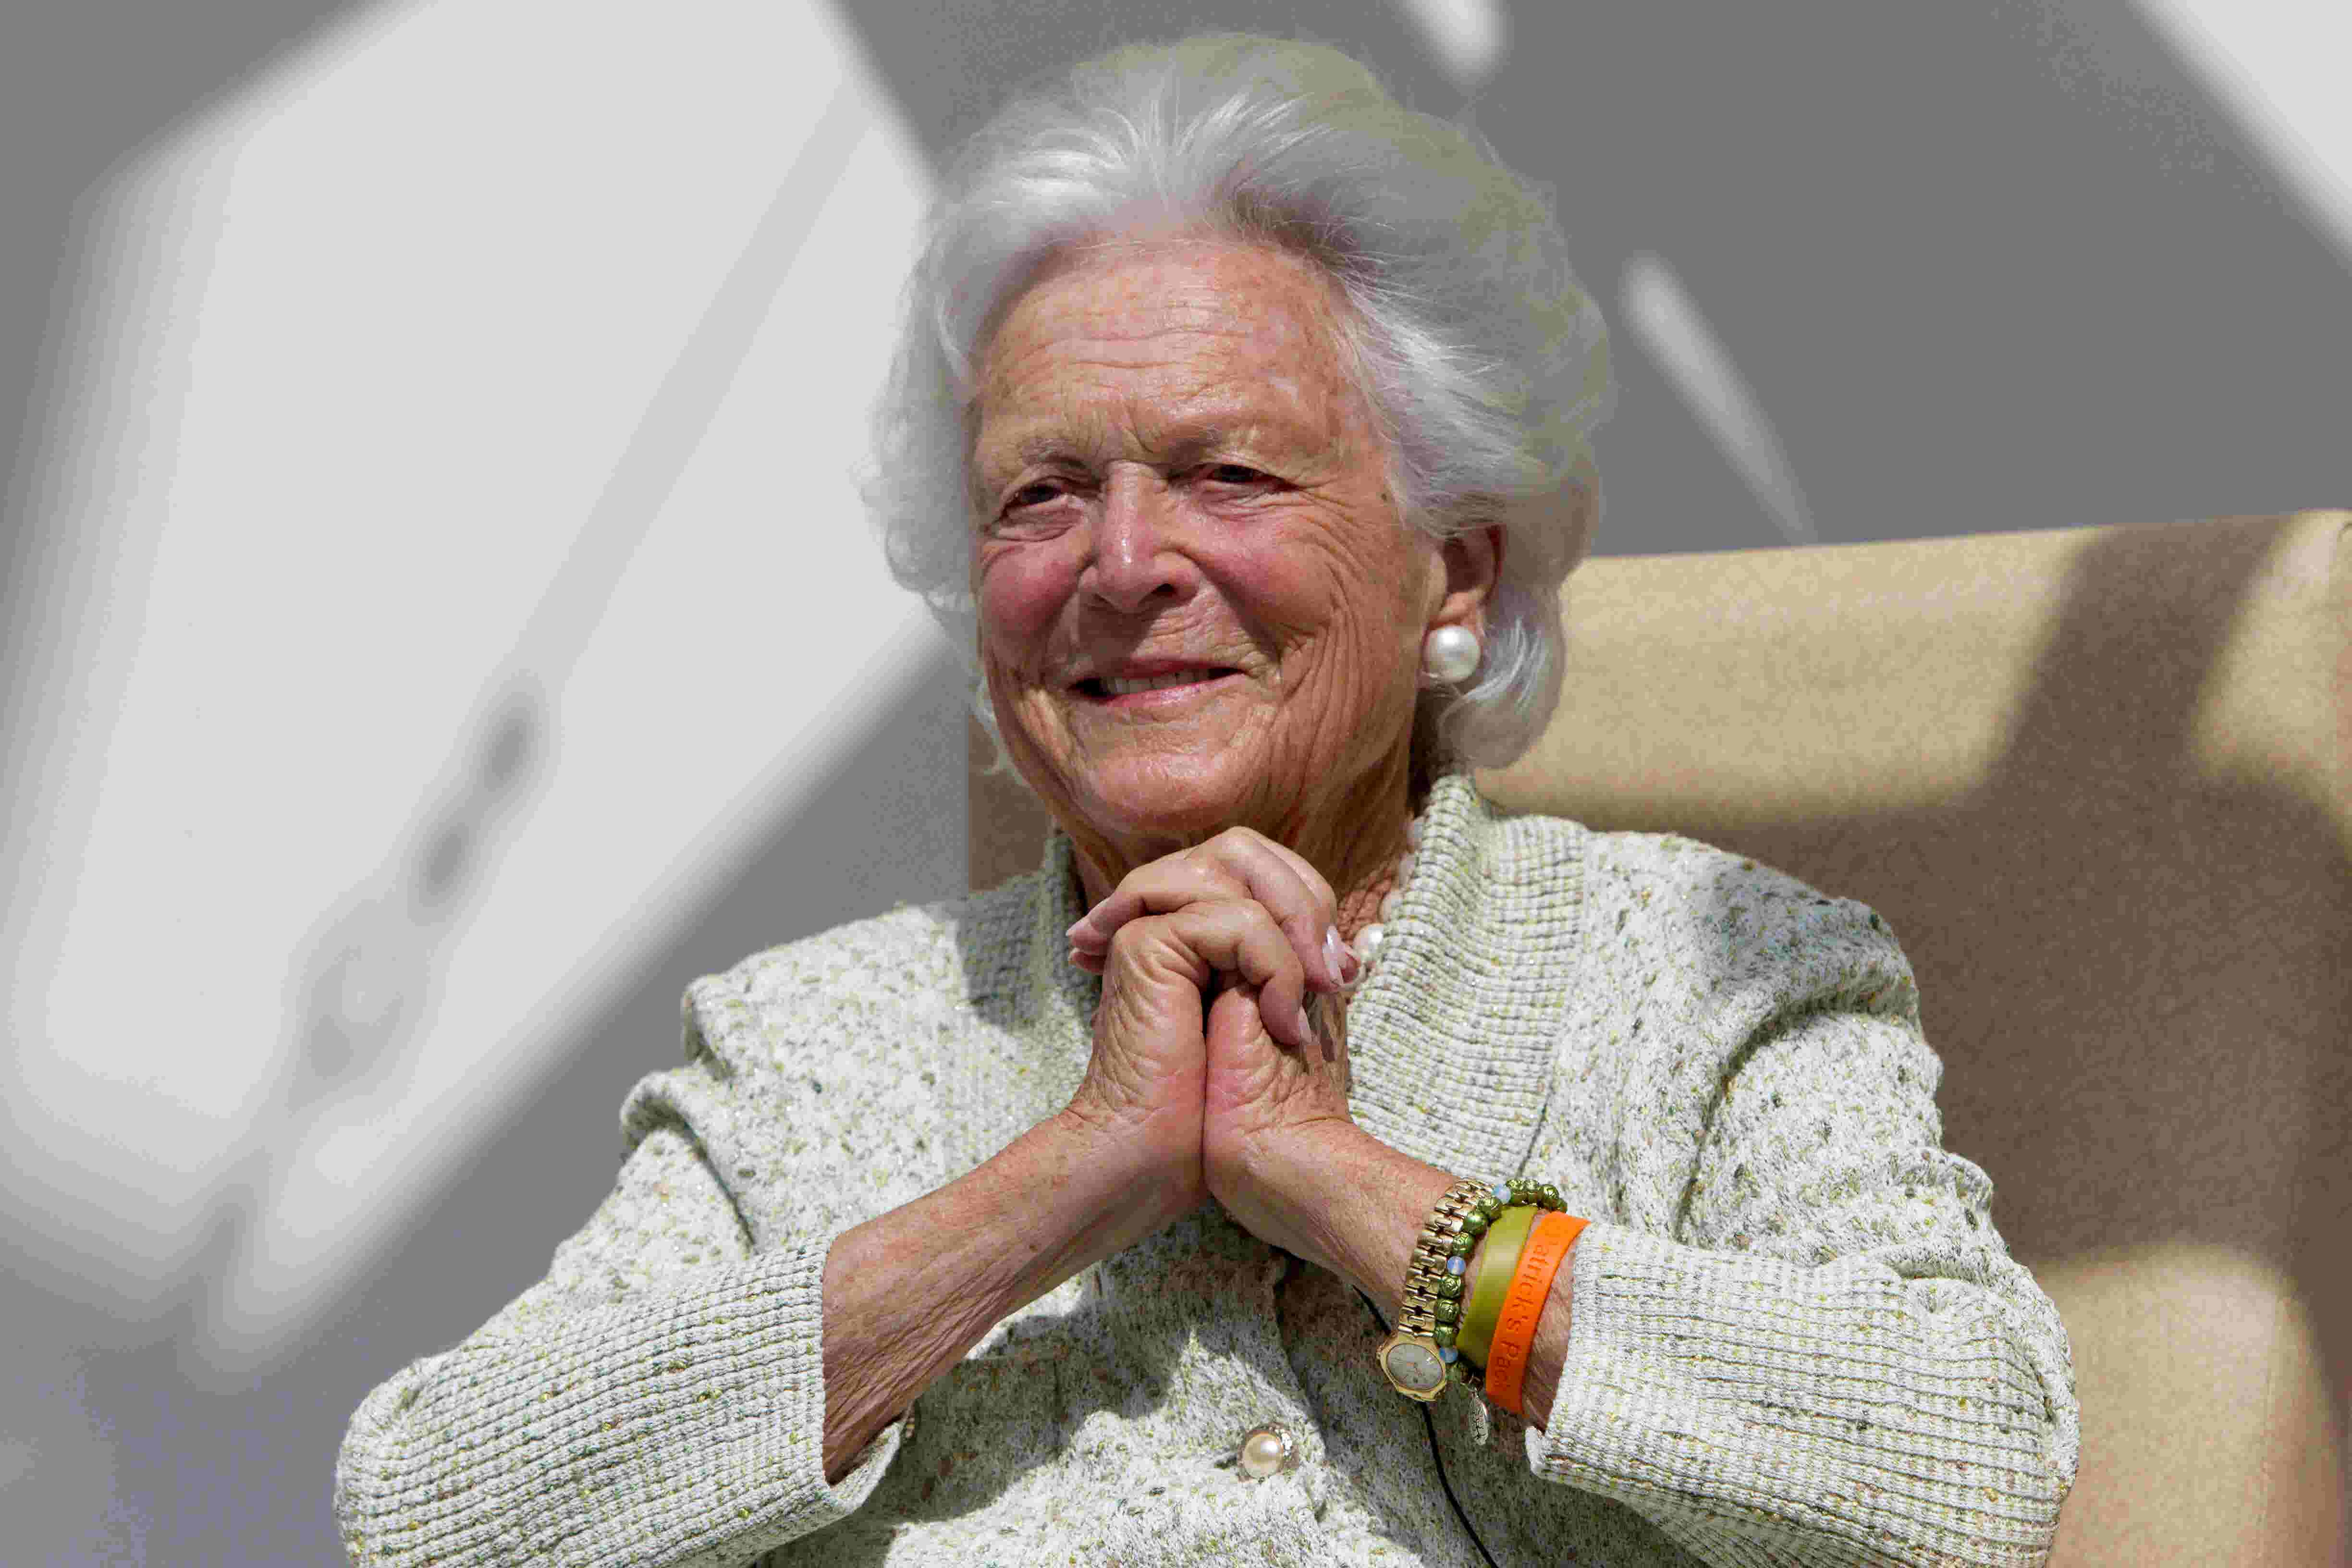 Now Hes Hiding Behind First Lady >> Barbara Bush Blames Trump For Heart Attack Gop Exit In The Matriarch